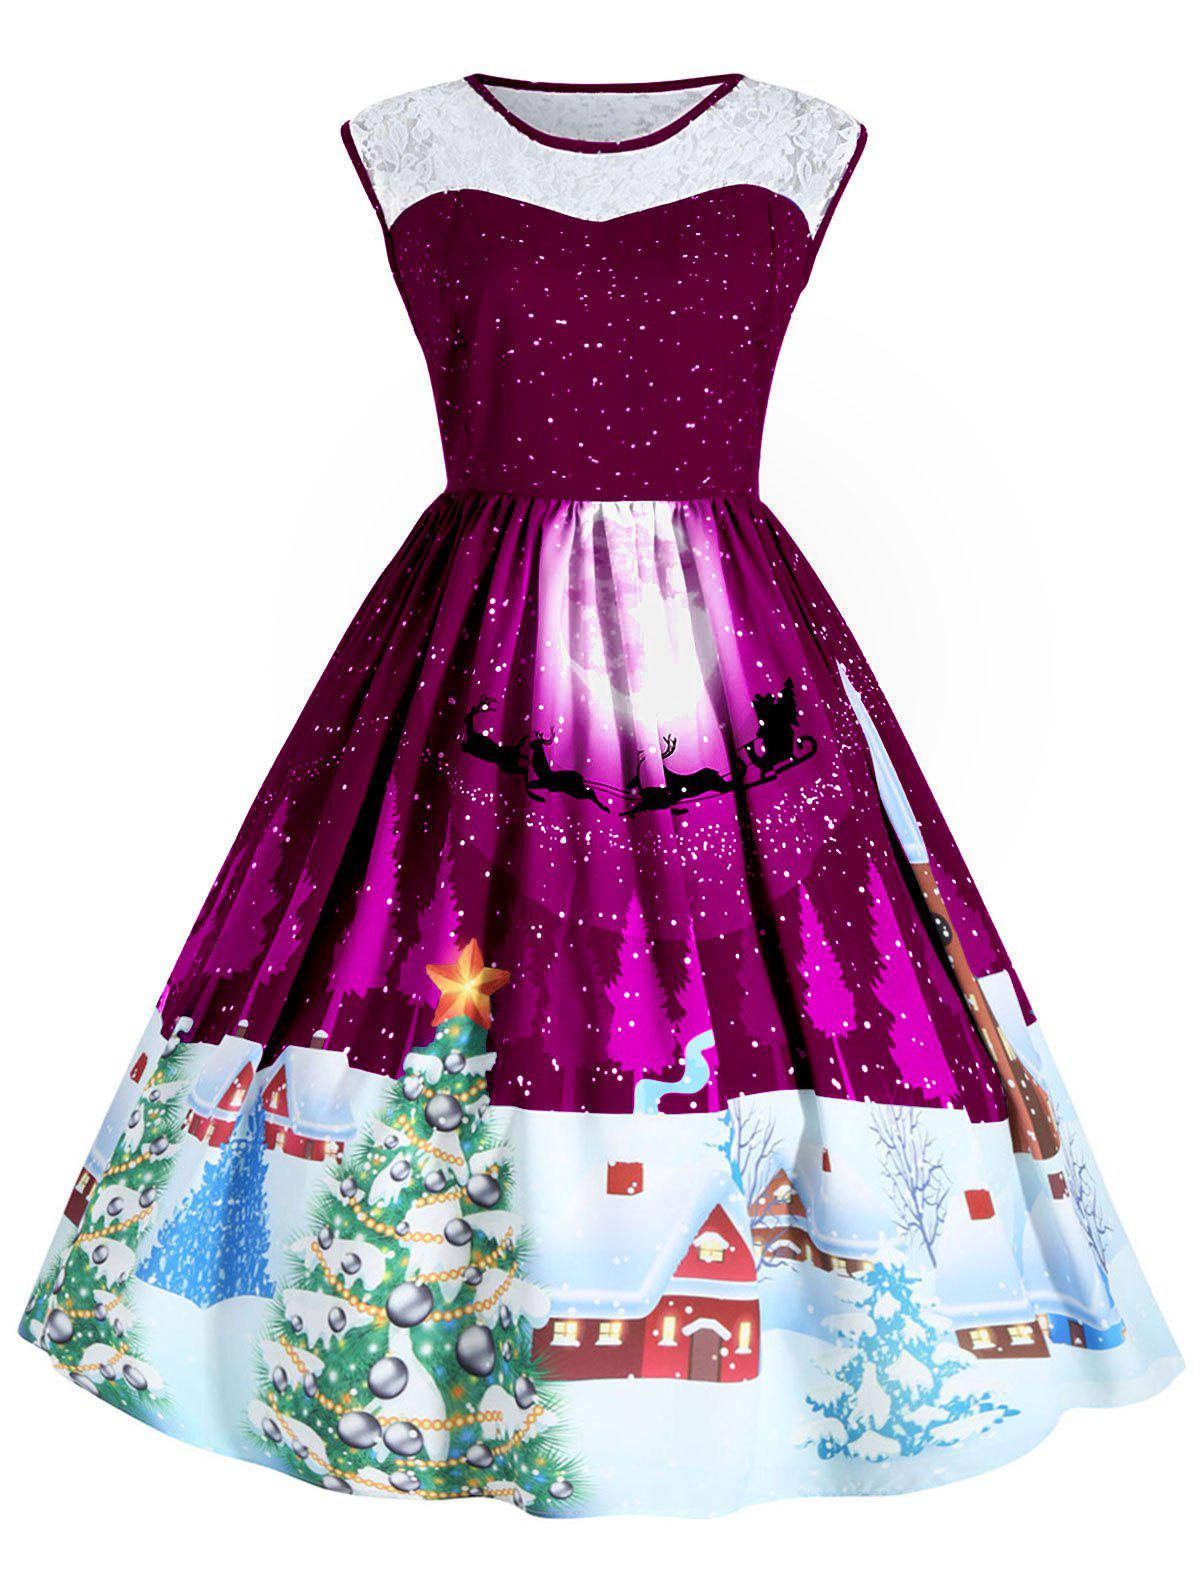 Christmas Plus Size Lace Panel Sleeveless Party DressWOMEN<br><br>Size: 4XL; Color: PURPLISH RED; Style: Cute; Material: Polyester; Silhouette: Ball Gown; Dresses Length: Mid-Calf; Neckline: Round Collar; Sleeve Length: Sleeveless; Waist: High Waisted; Embellishment: Hollow Out,Lace; Pattern Type: Animal,Graphic,Plant,Print; With Belt: No; Season: Fall,Winter; Weight: 0.4100kg; Package Contents: 1 x Dress;